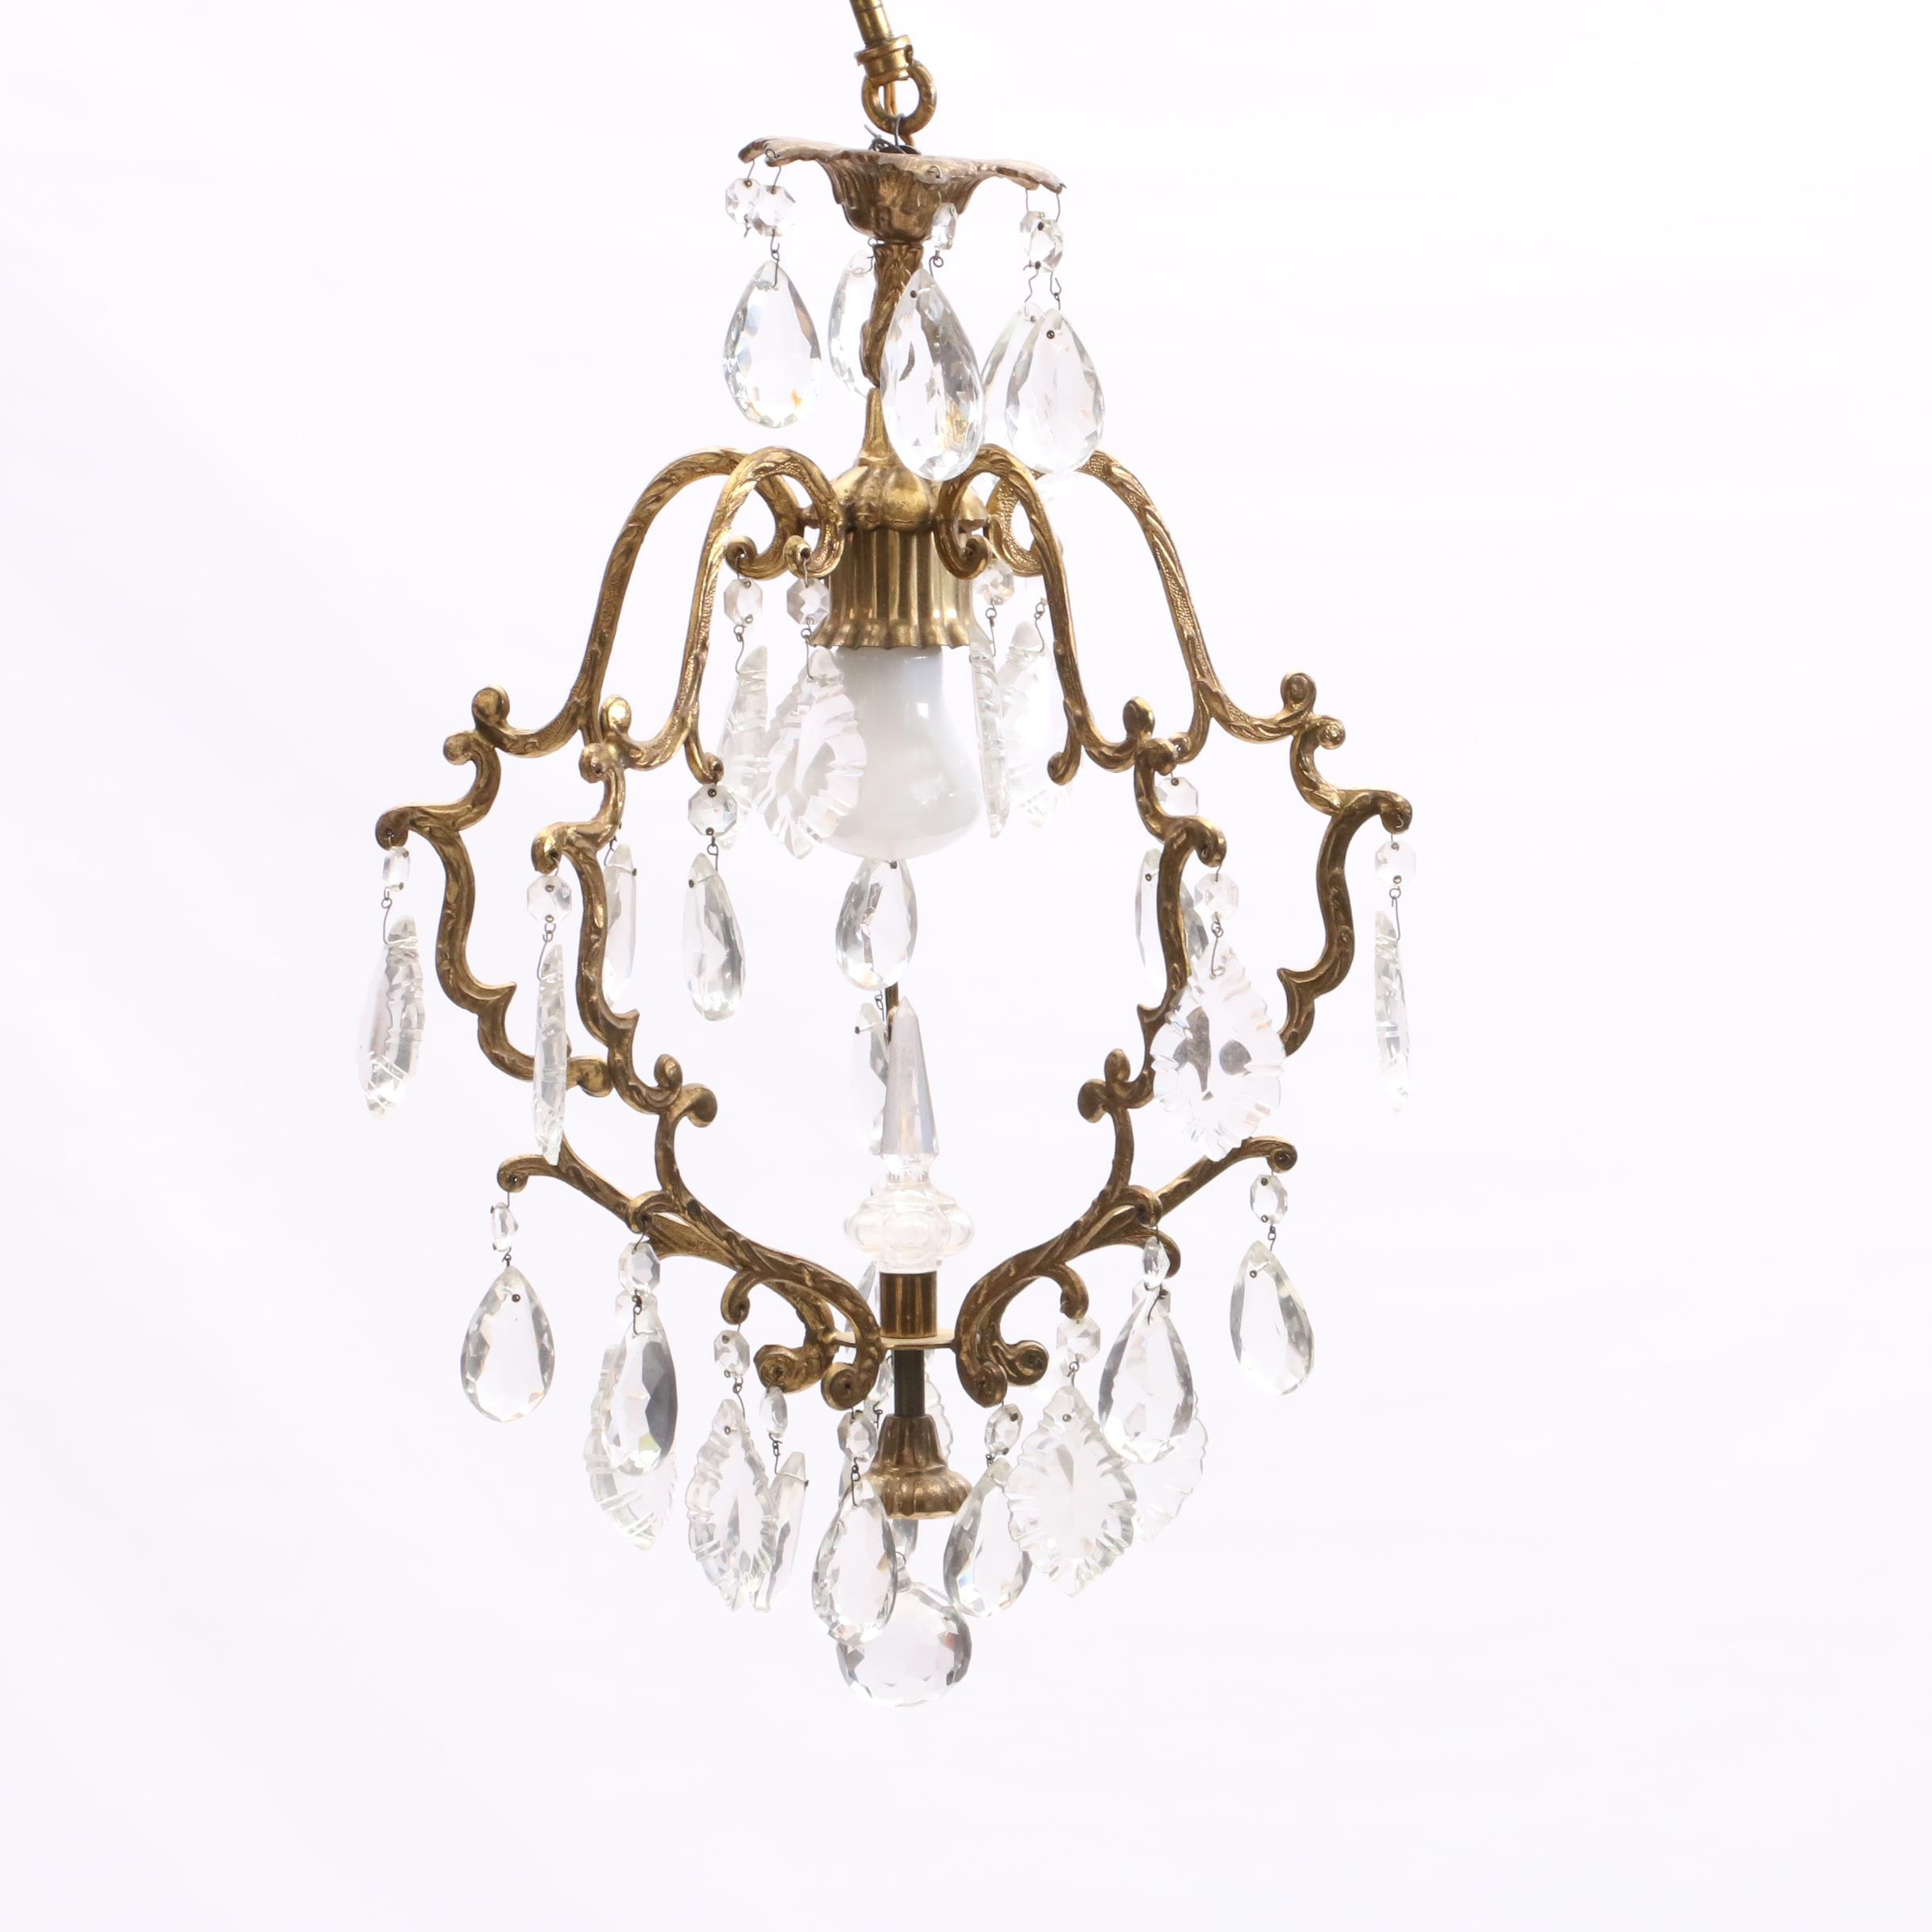 Gold Tone and Prism Chandelier